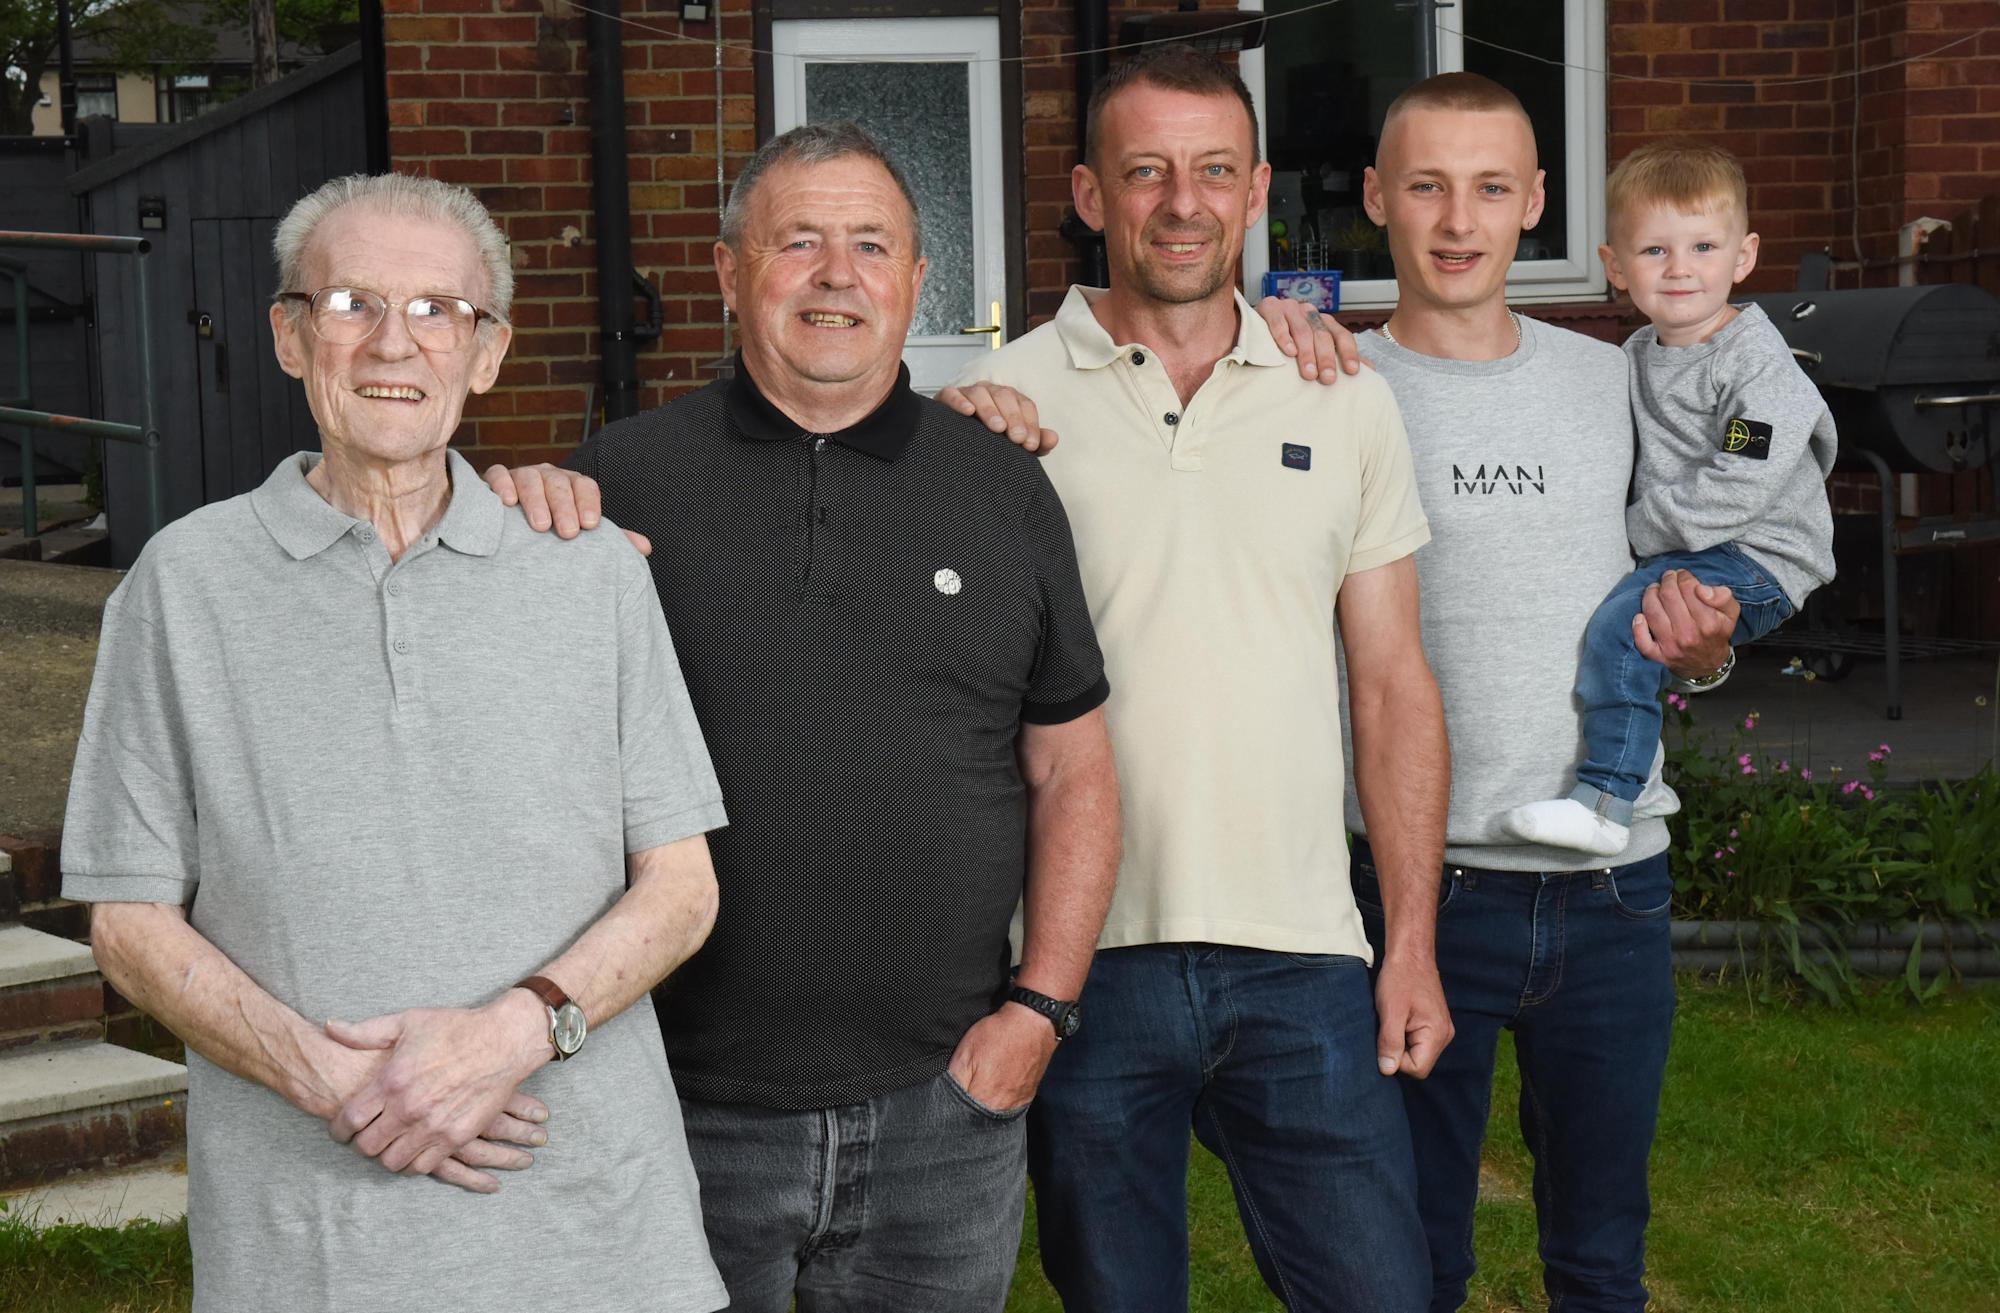 Five generations of first born males set to celebrate Father's Day this Sunday